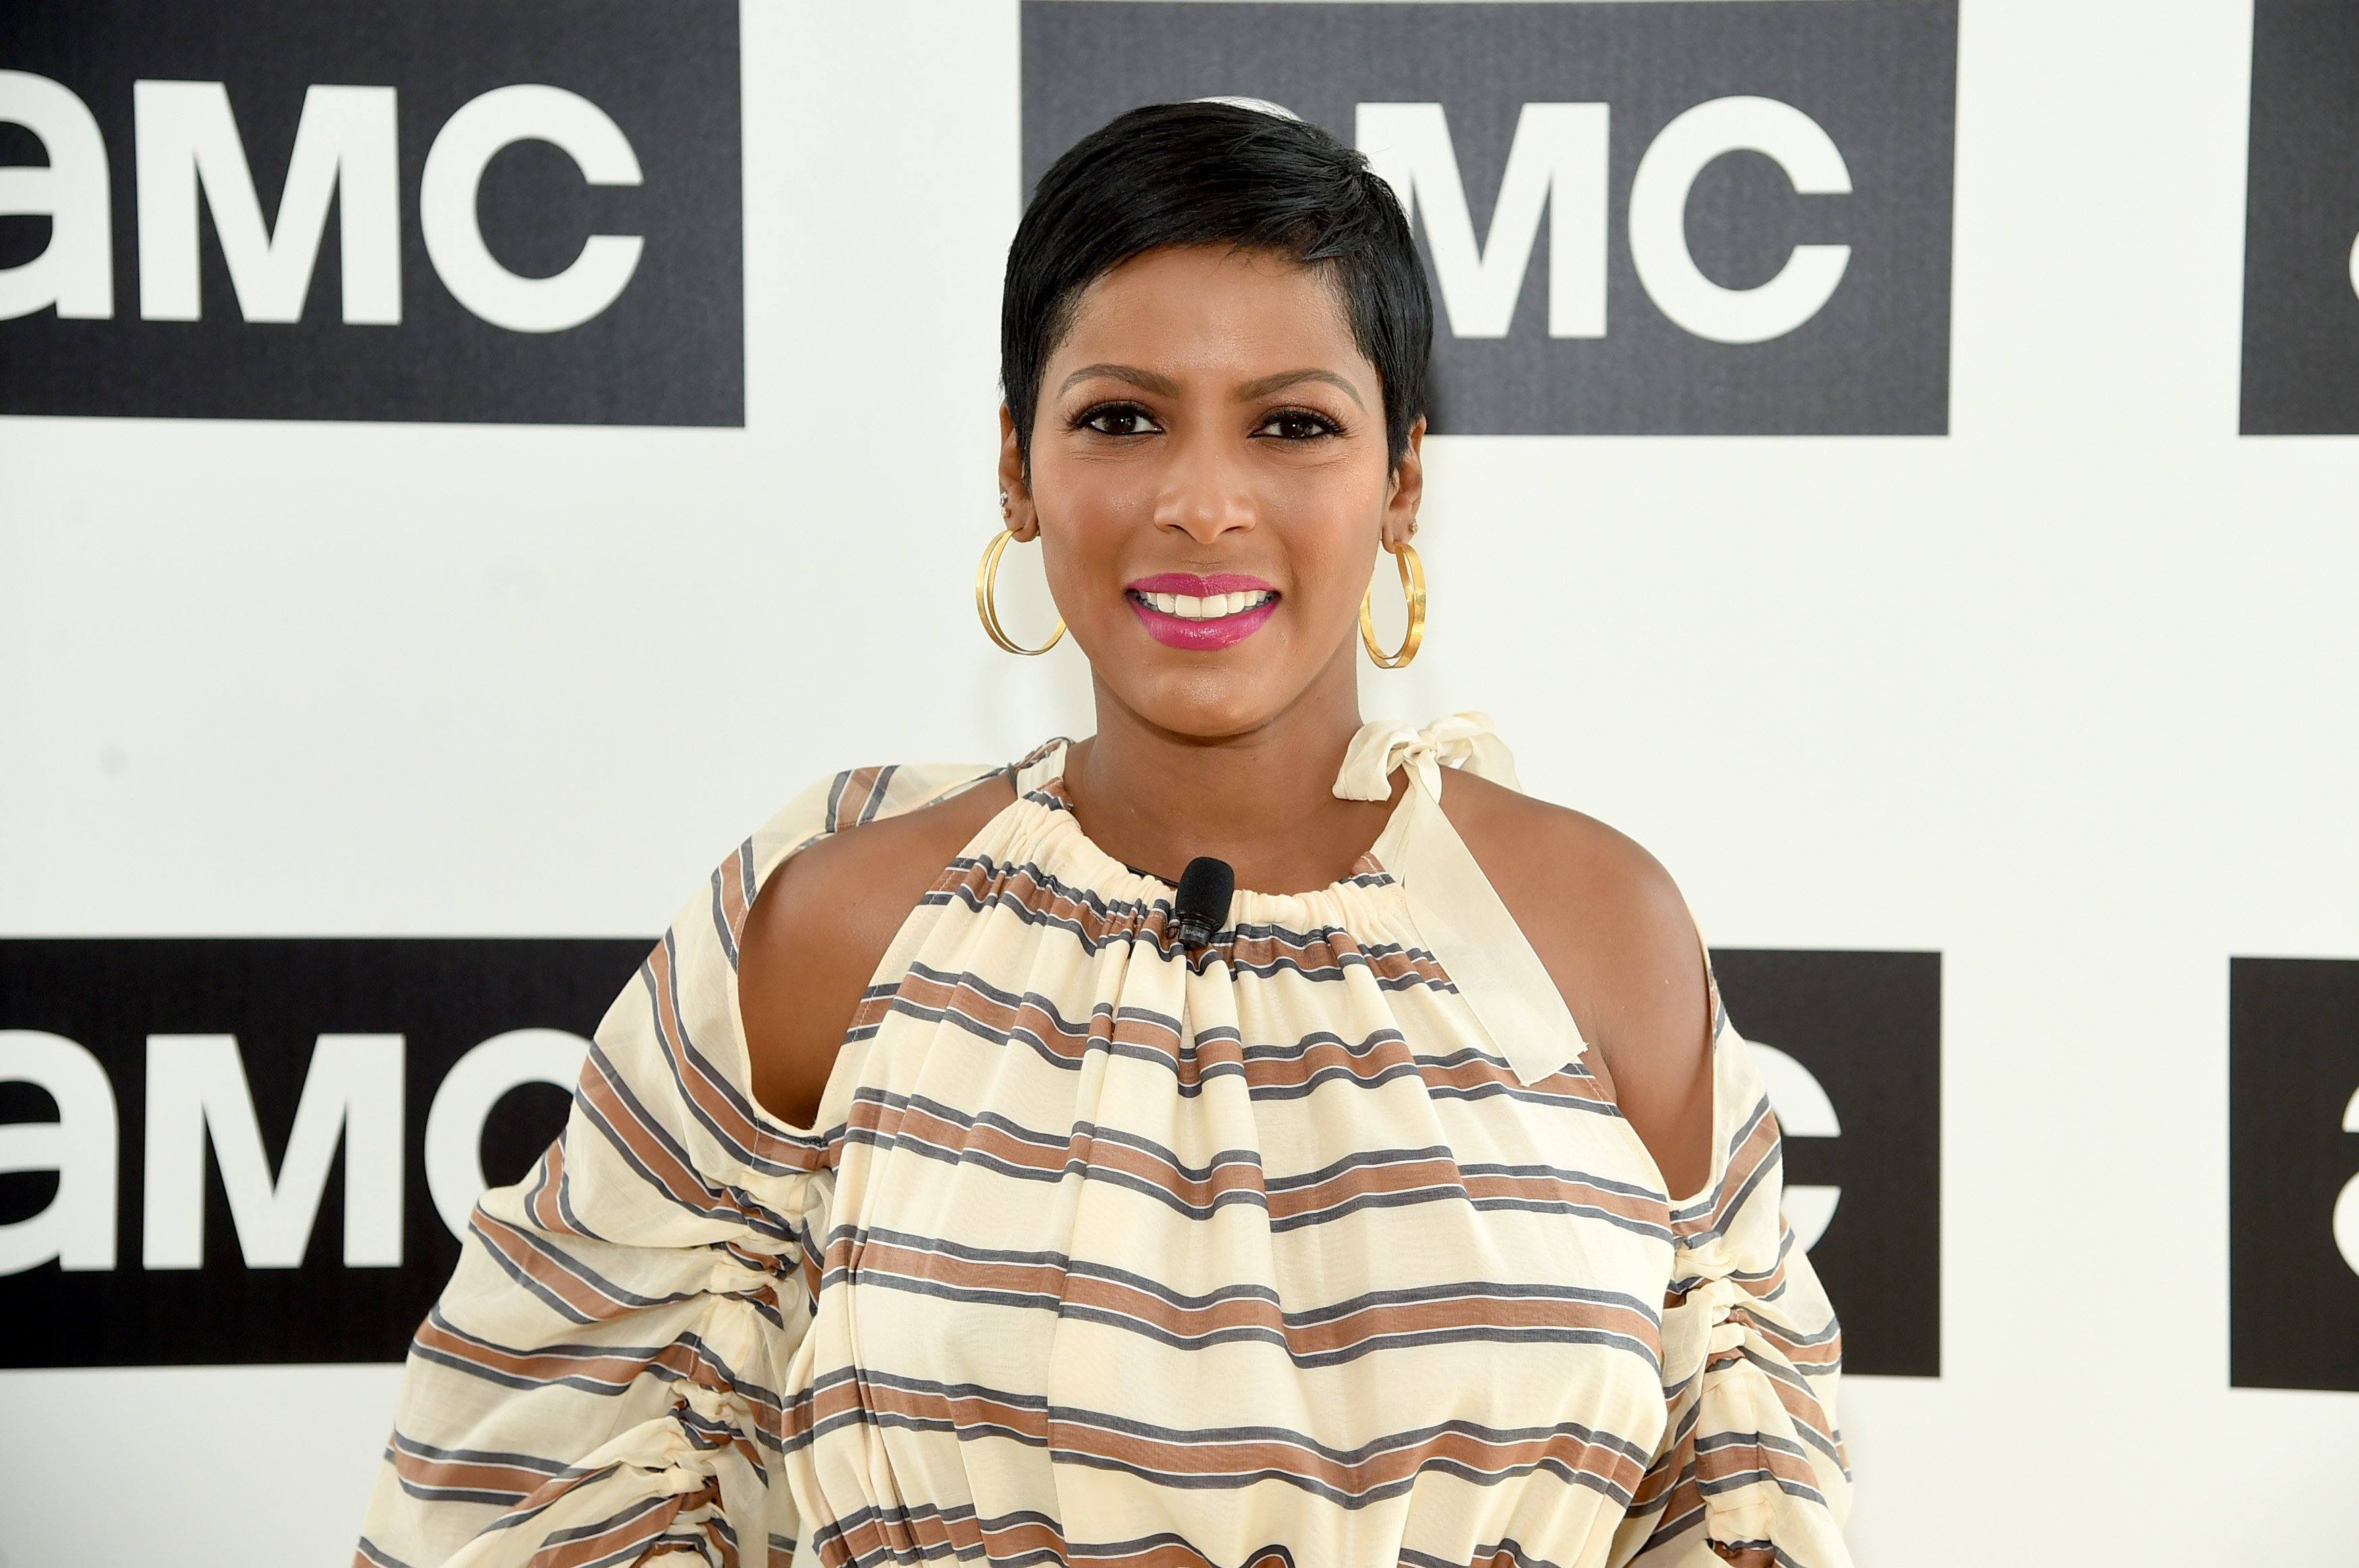 Tamron Hall attends the AMC Summit in New York City on June 20, 2018 | Photo: Getty Images